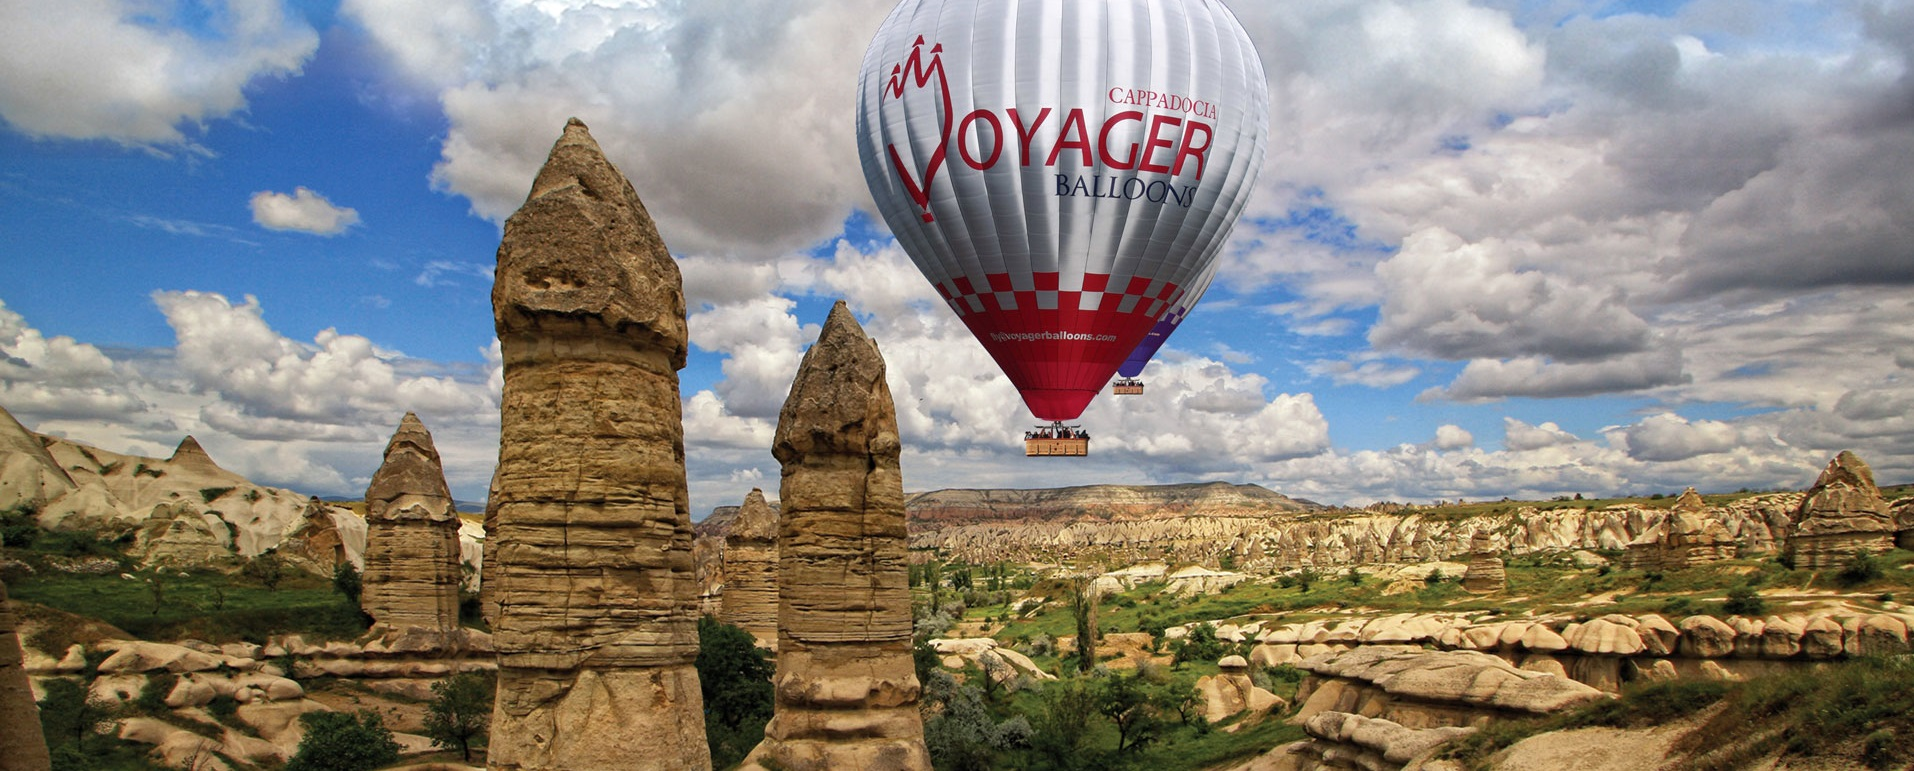 Most-Beautiful-Cappadocia-Wallpaper — копия